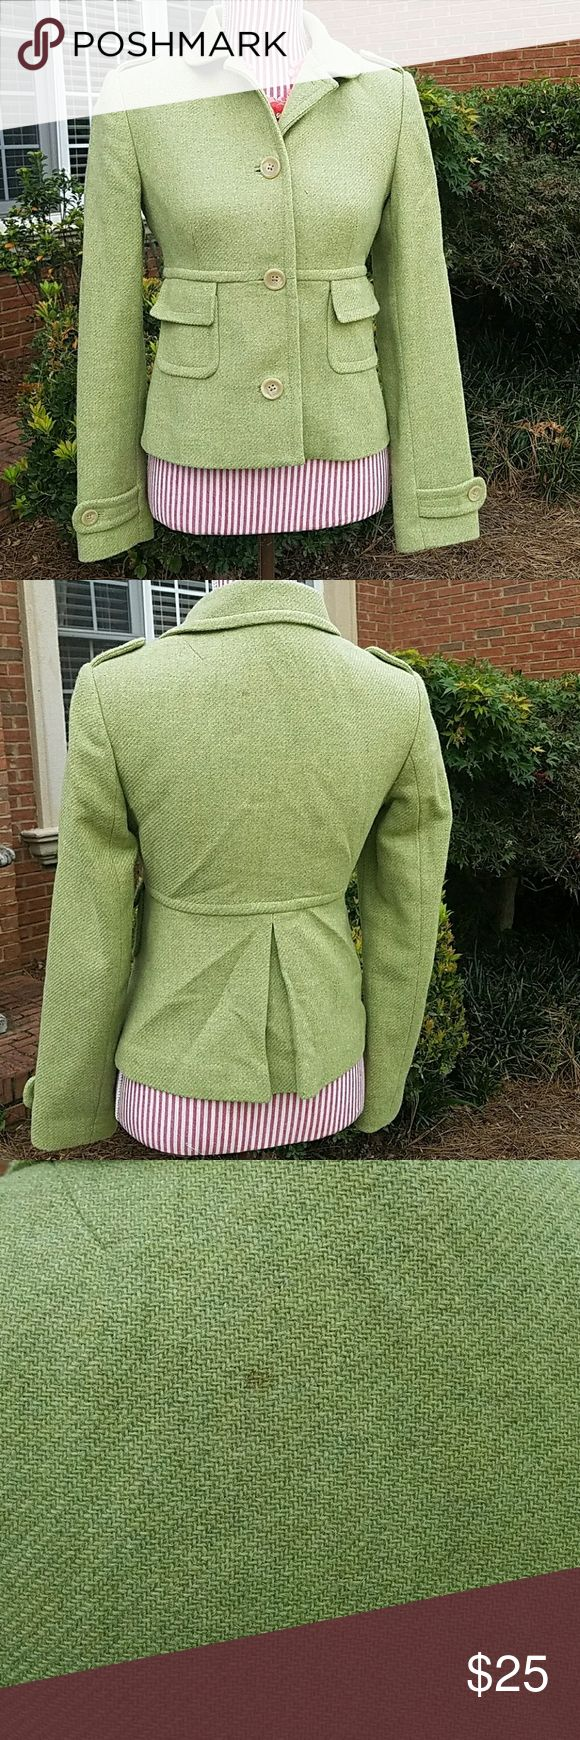 Banana Republic Wool Blazer Coat Fabulous wool coat in a pretty mint green. Fully lined. Excellent condition. Bust: 16.5, Length: 21 inches. 80% Wool, 15% Nylon, 5% Other Fibers. Add to bundle to save! Banana Republic Jackets & Coats Blazers